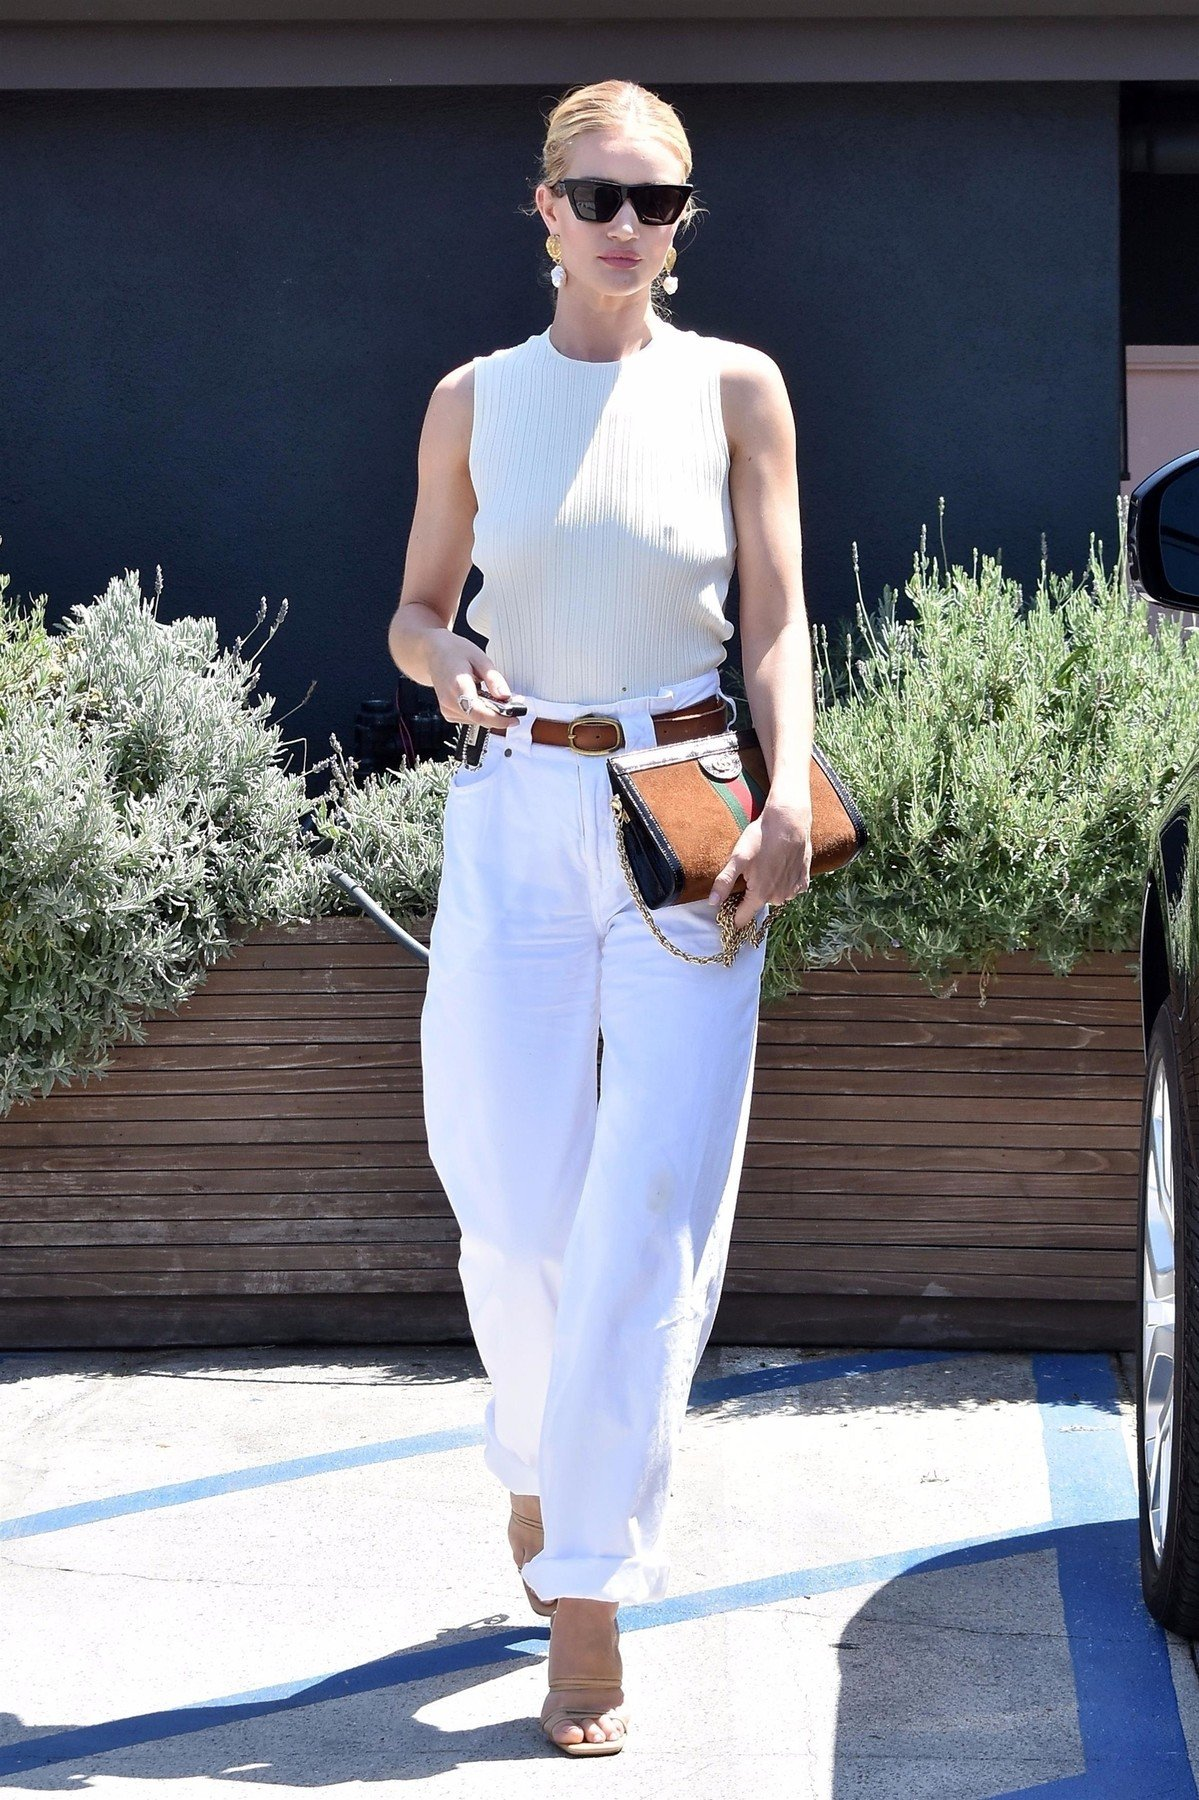 Los Angeles, CA  - *EXCLUSIVE*  - Supermodel Rosie Huntington-Whiteley was spotted at Eric Buterbaugh Florals in Los Angeles. The supermodel went braless in a white top with open back, white pants and sandals with an artistic heel.  Pictured: Rosie Huntington-Whiteley    *UK Clients - Pictures Containing Children Please Pixelate Face Prior To Publication*, Image: 377582596, License: Rights-managed, Restrictions: , Model Release: no, Credit line: Profimedia, AKM-GSI